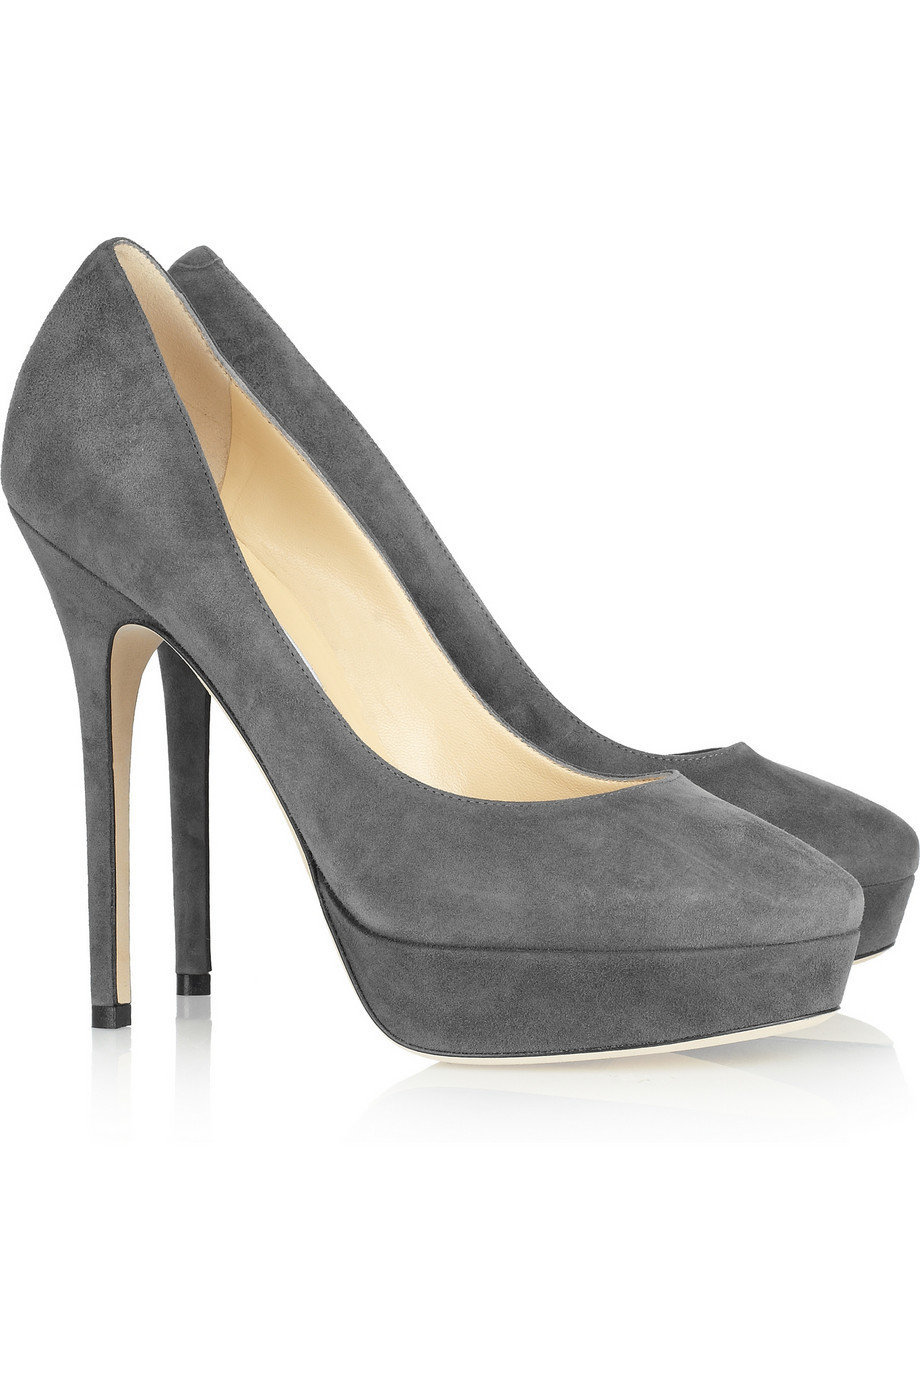 Jimmy Choo | Cosmic suede pumps | NET-A-PORTER.COM